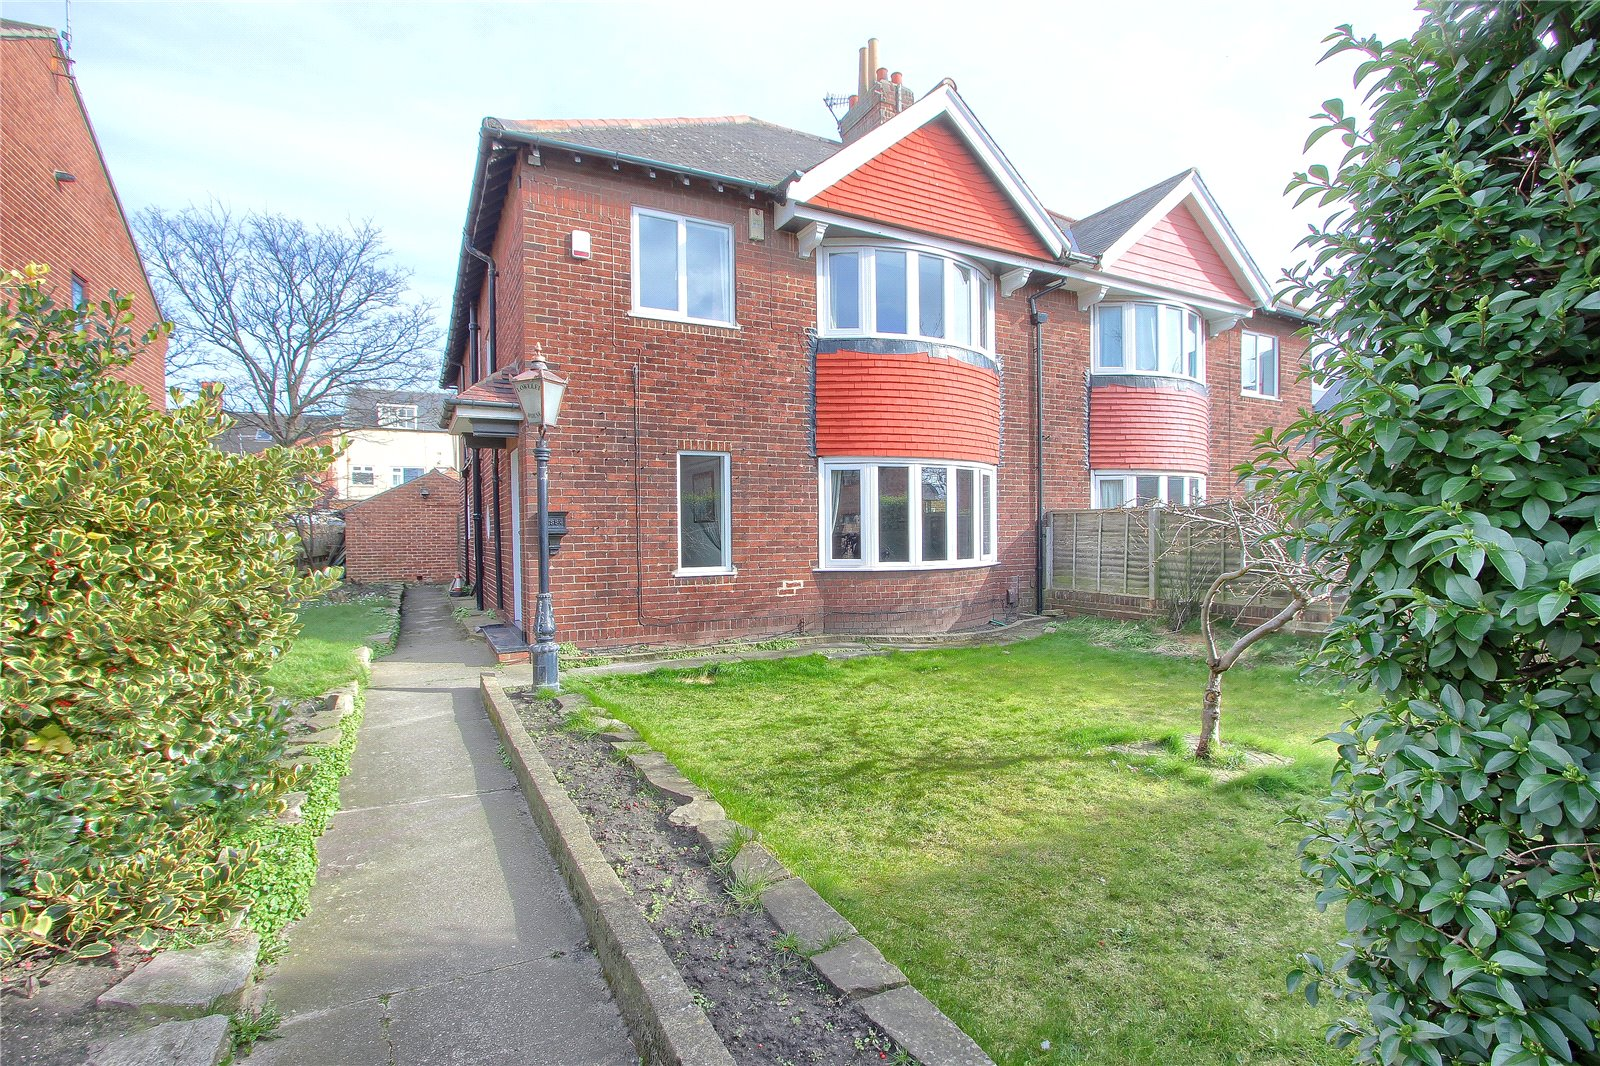 4 bed house for sale in Blenheim Terrace, Redcar 1